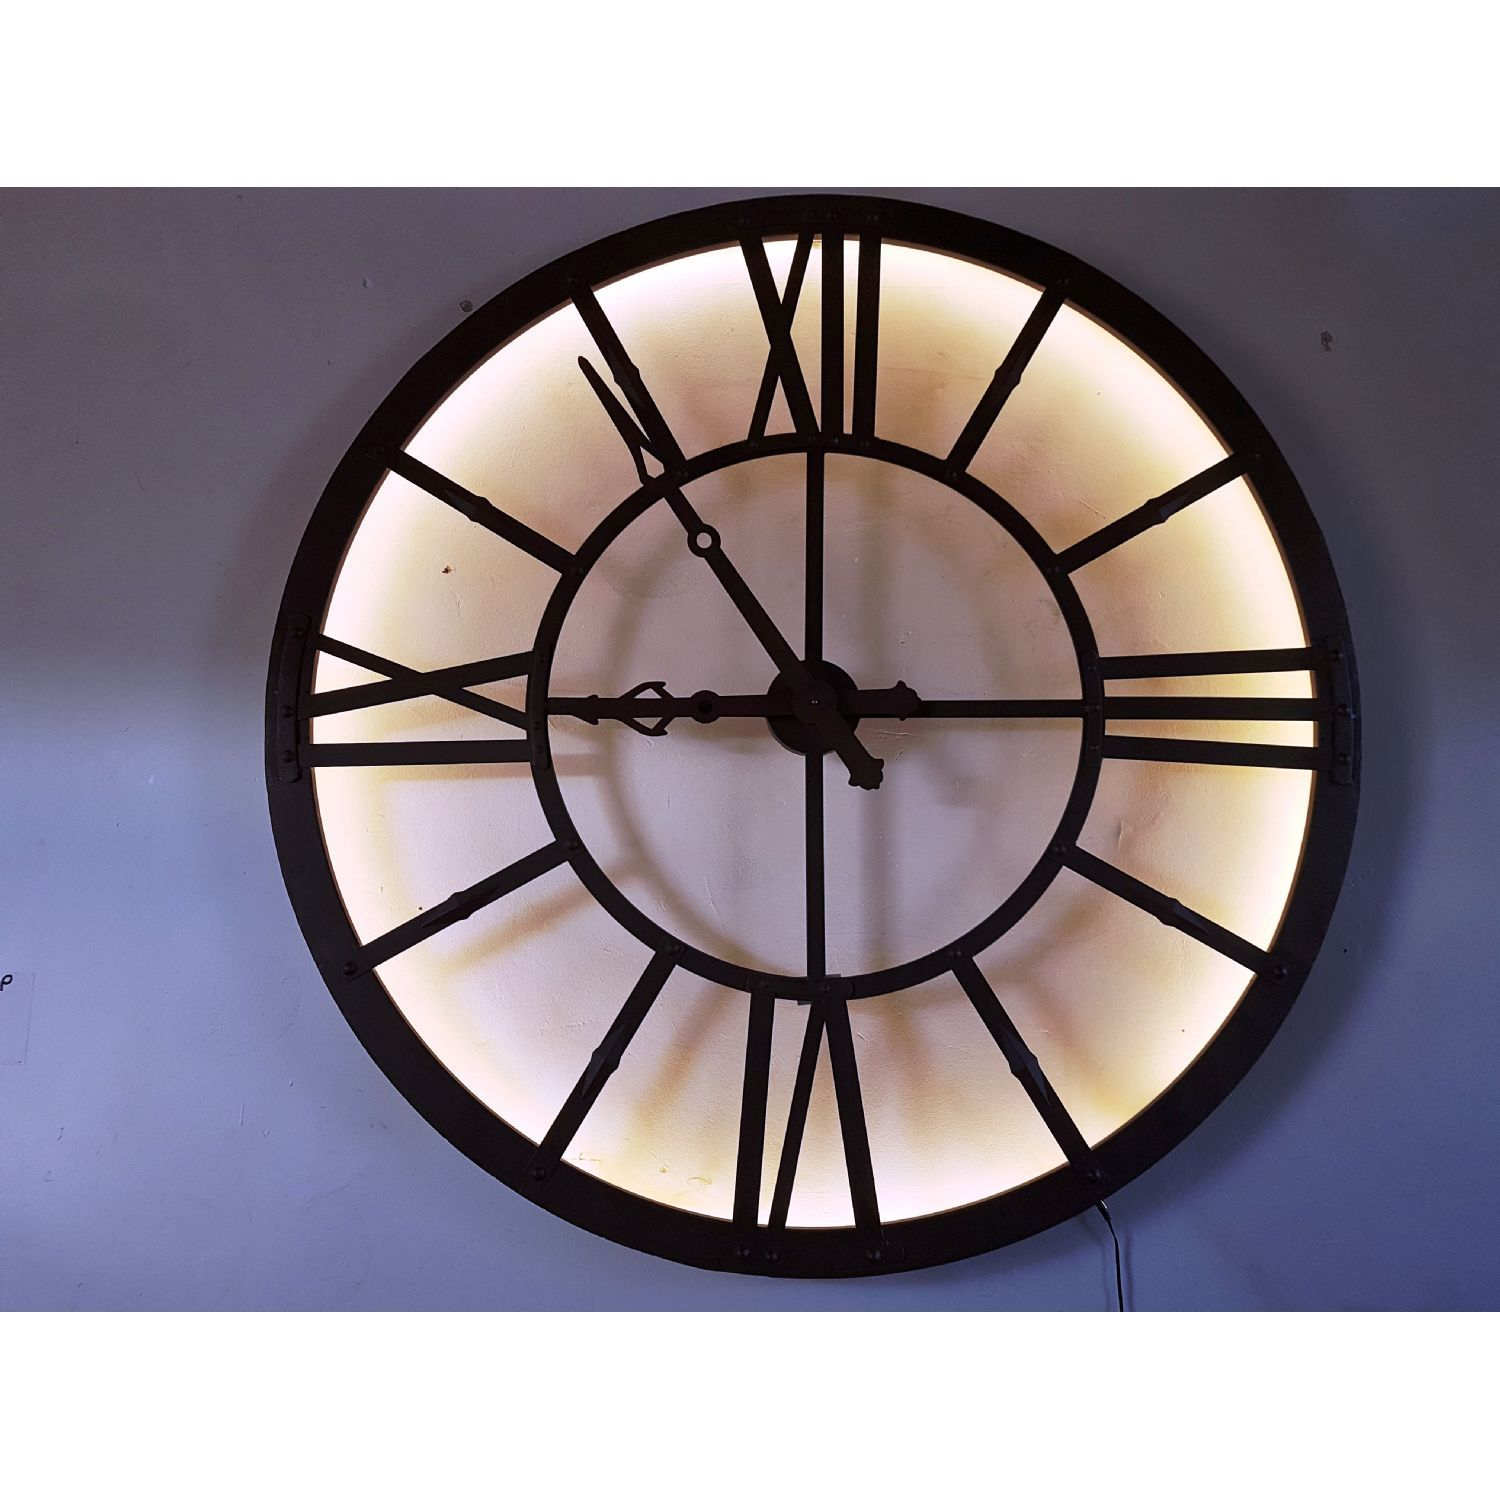 London large wrought iron effect urban chic illuminated wall clock london large wrought iron effect urban chic illuminated wall clock amipublicfo Images